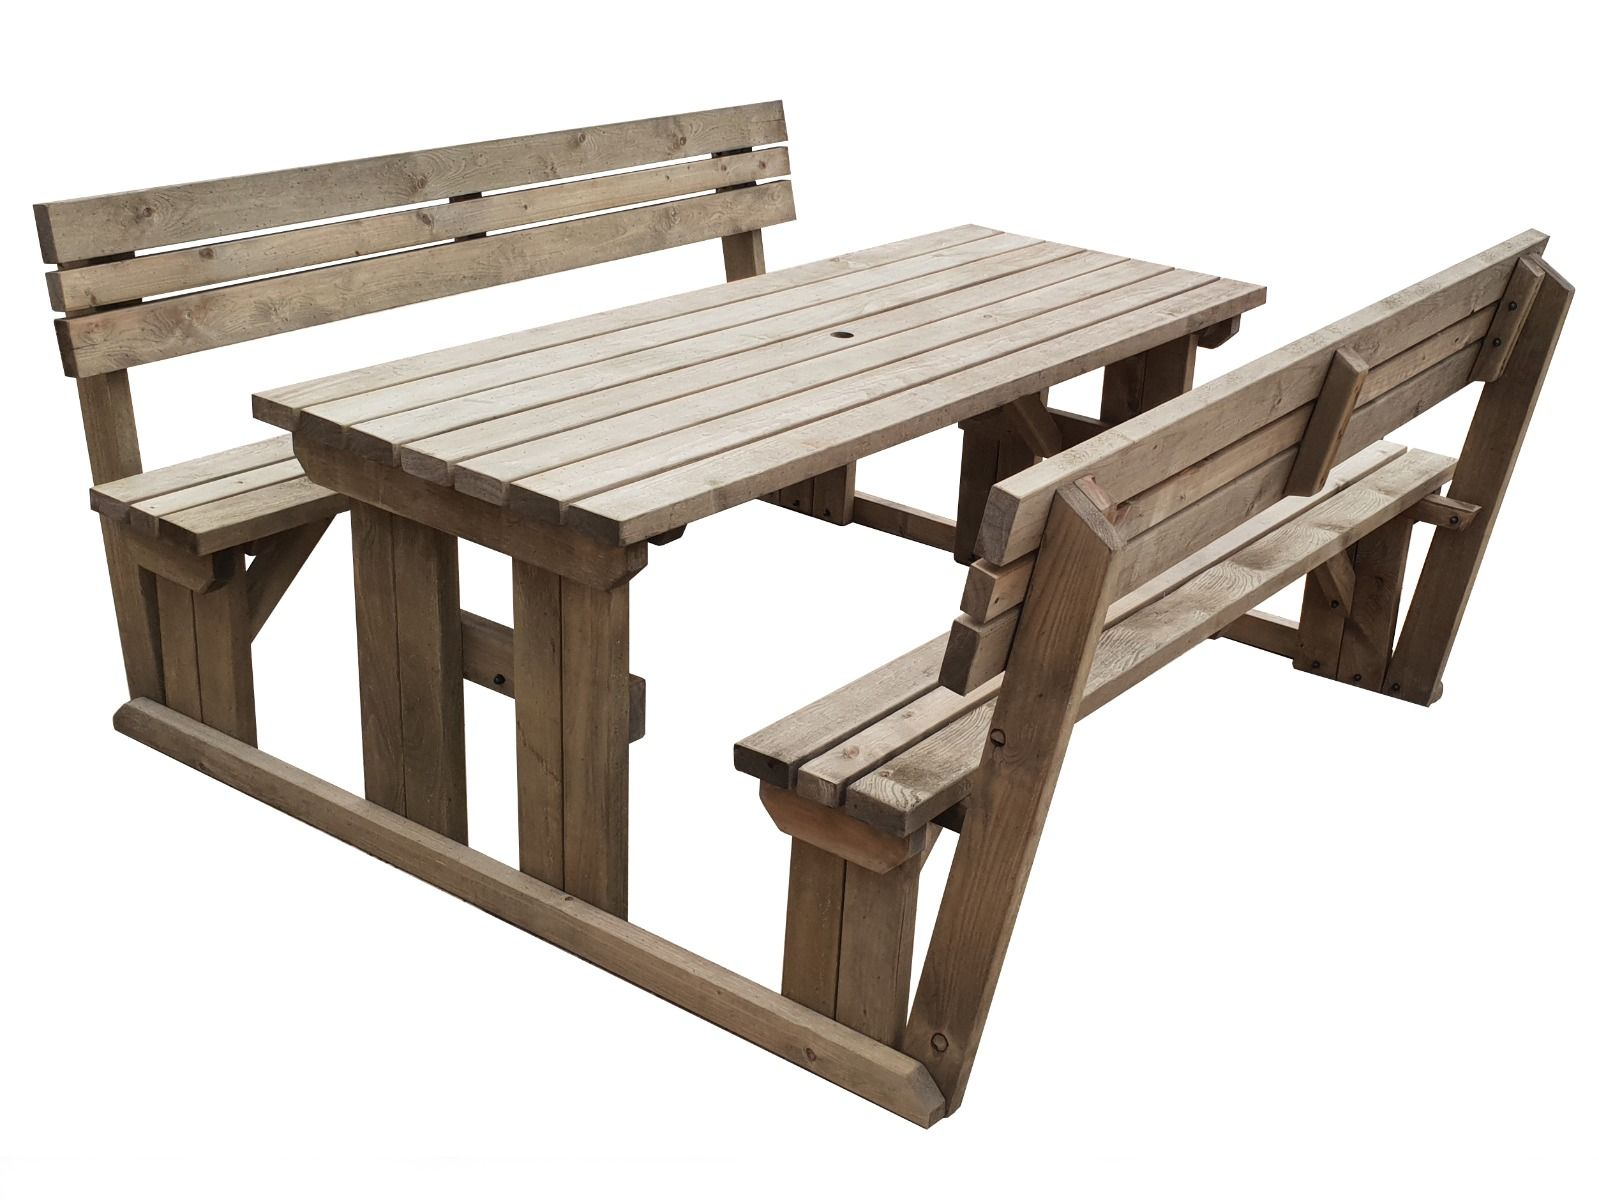 Picnic Table and Bench Set Wooden Garden Furniture with Back Support,  Alders  eBay